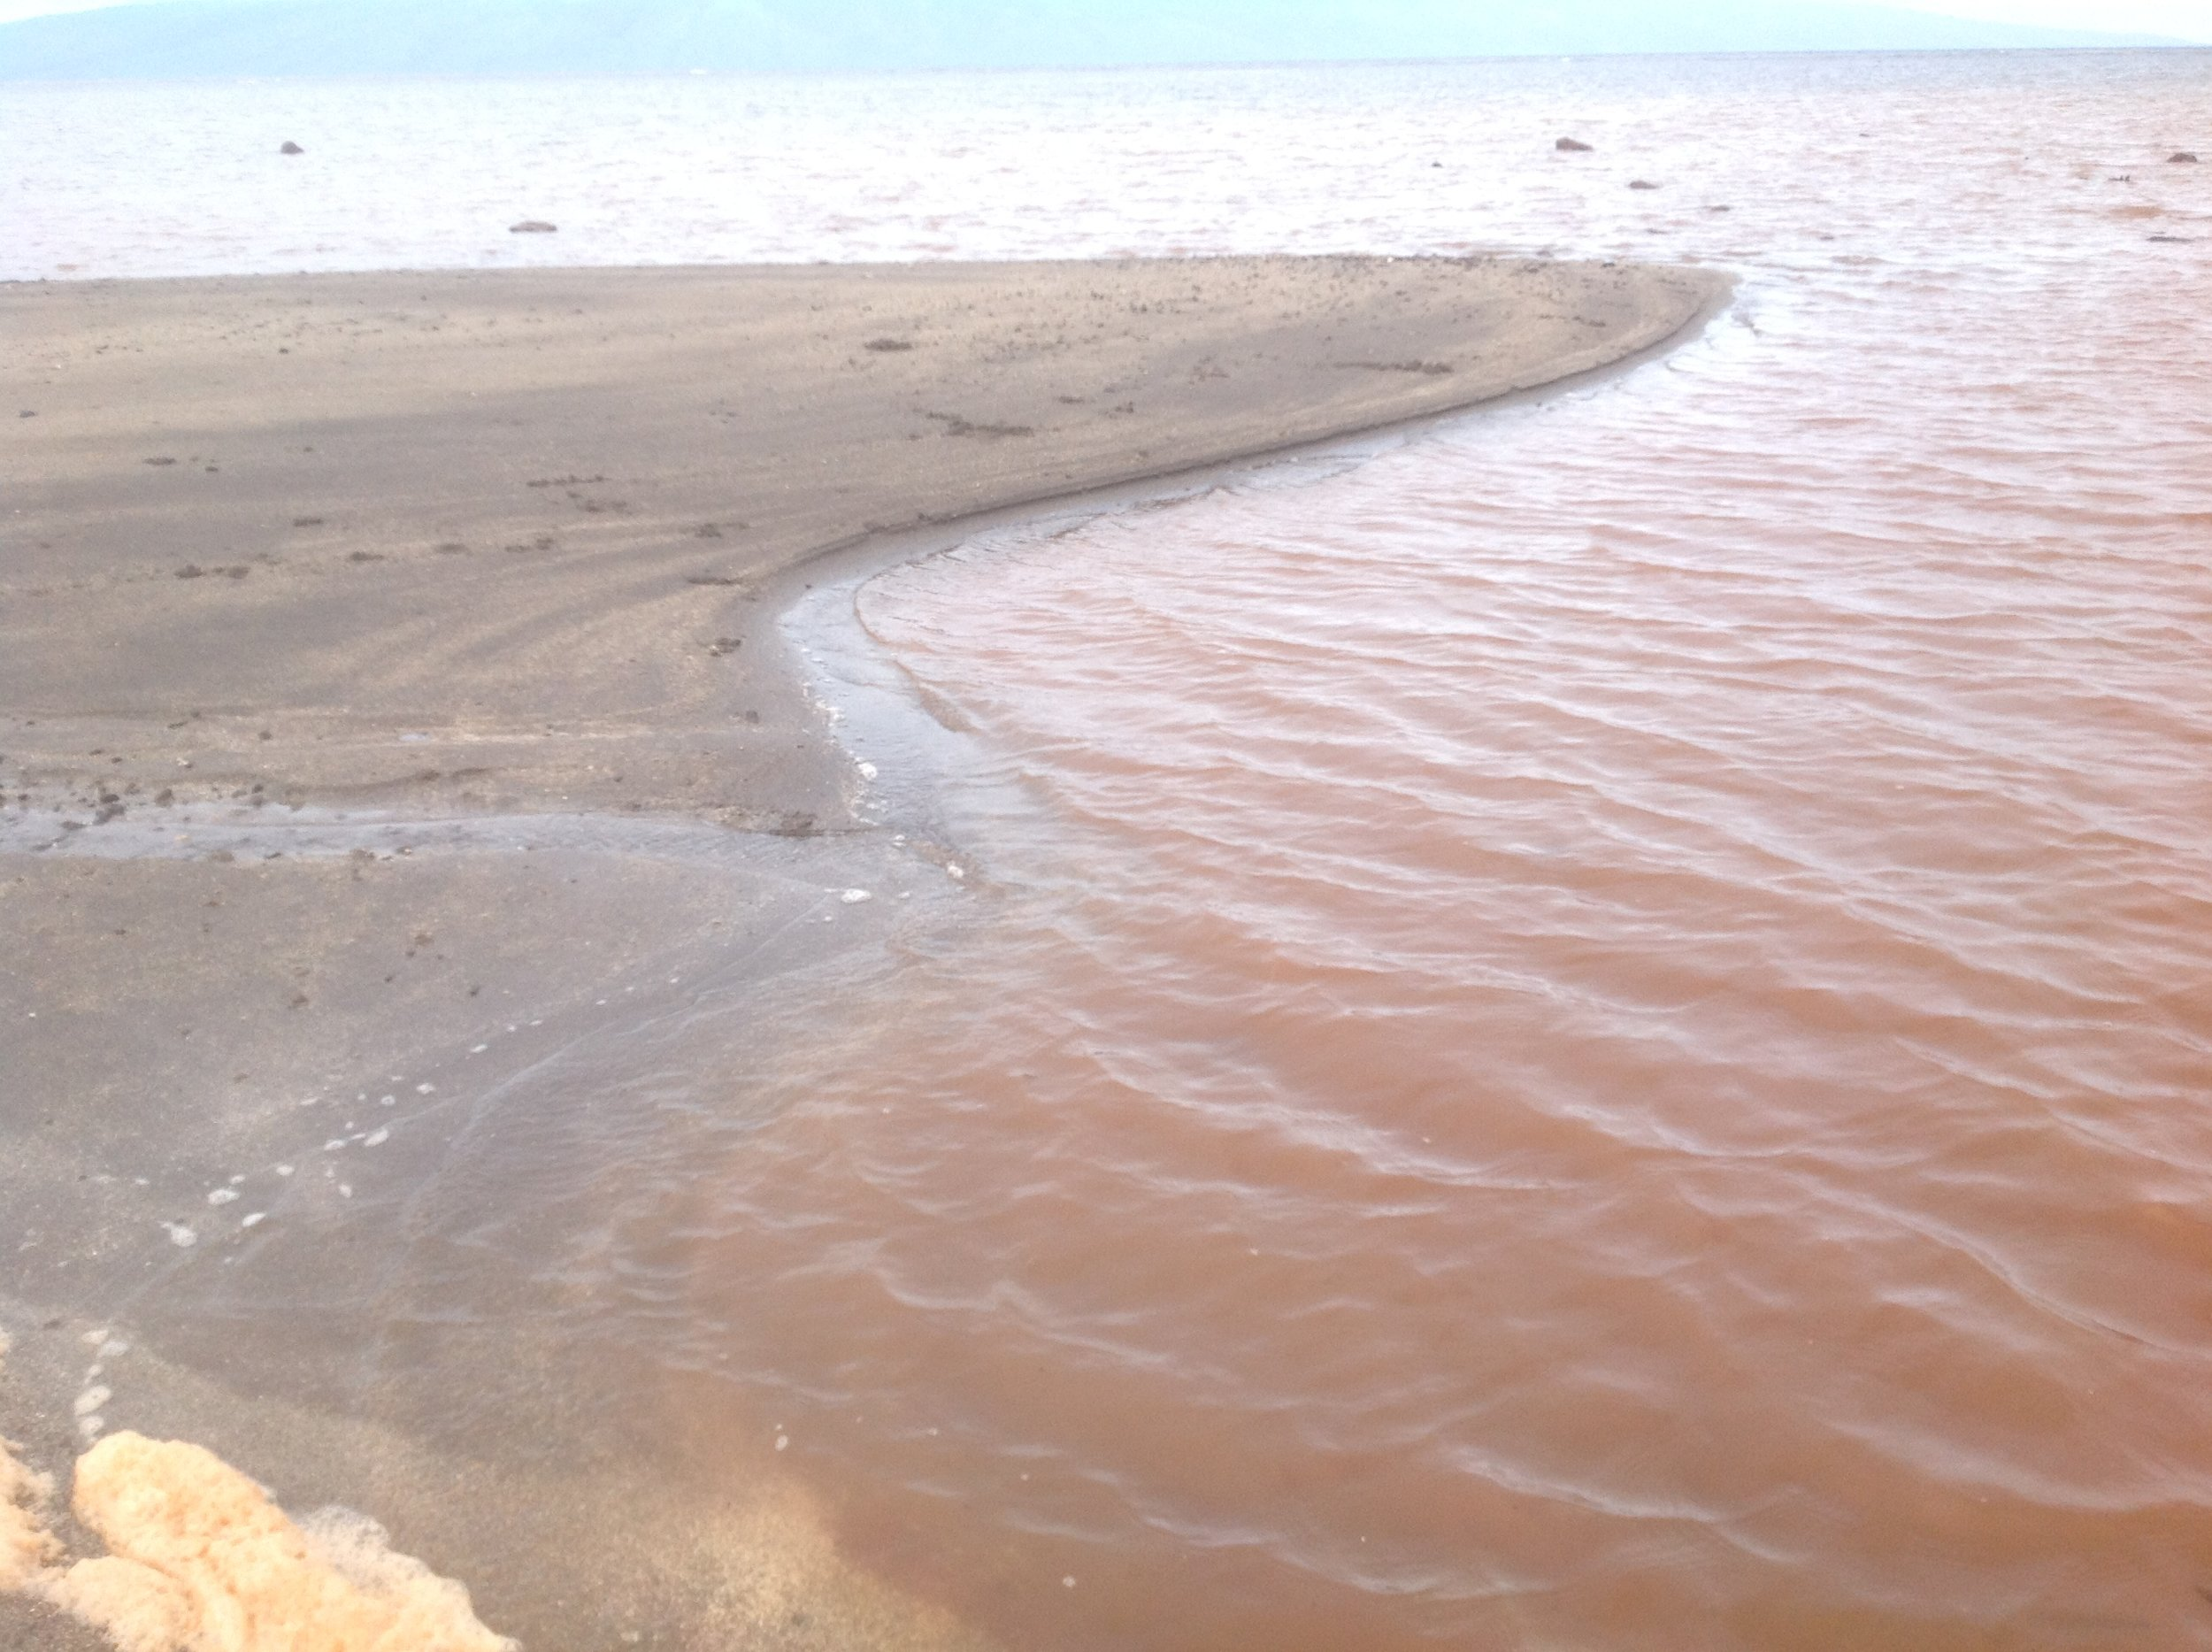 Brown water after strong sediment erosion on Lanaʻi